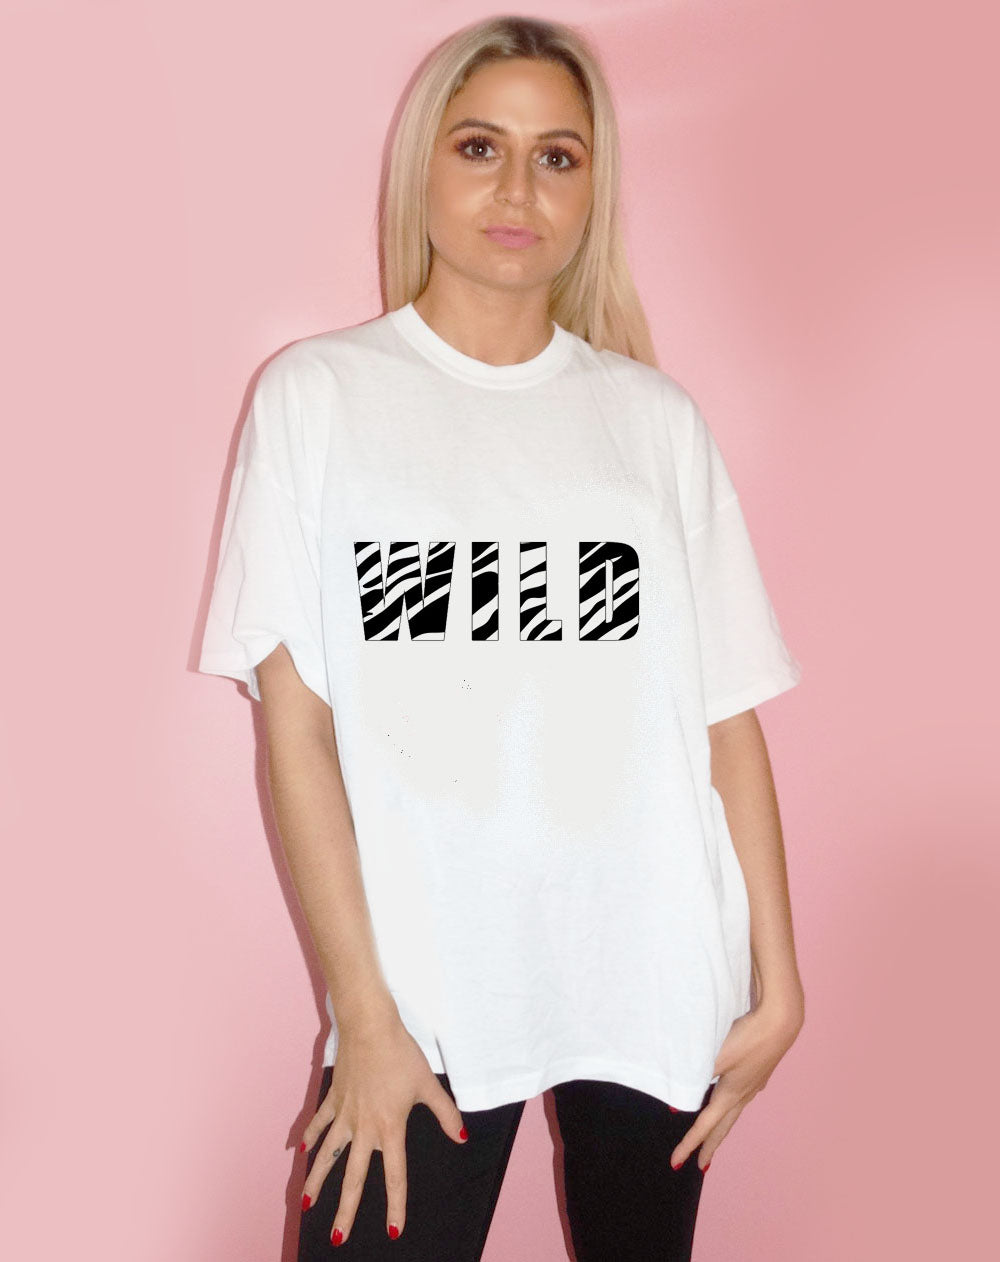 Zebra Wild Graphic Tee